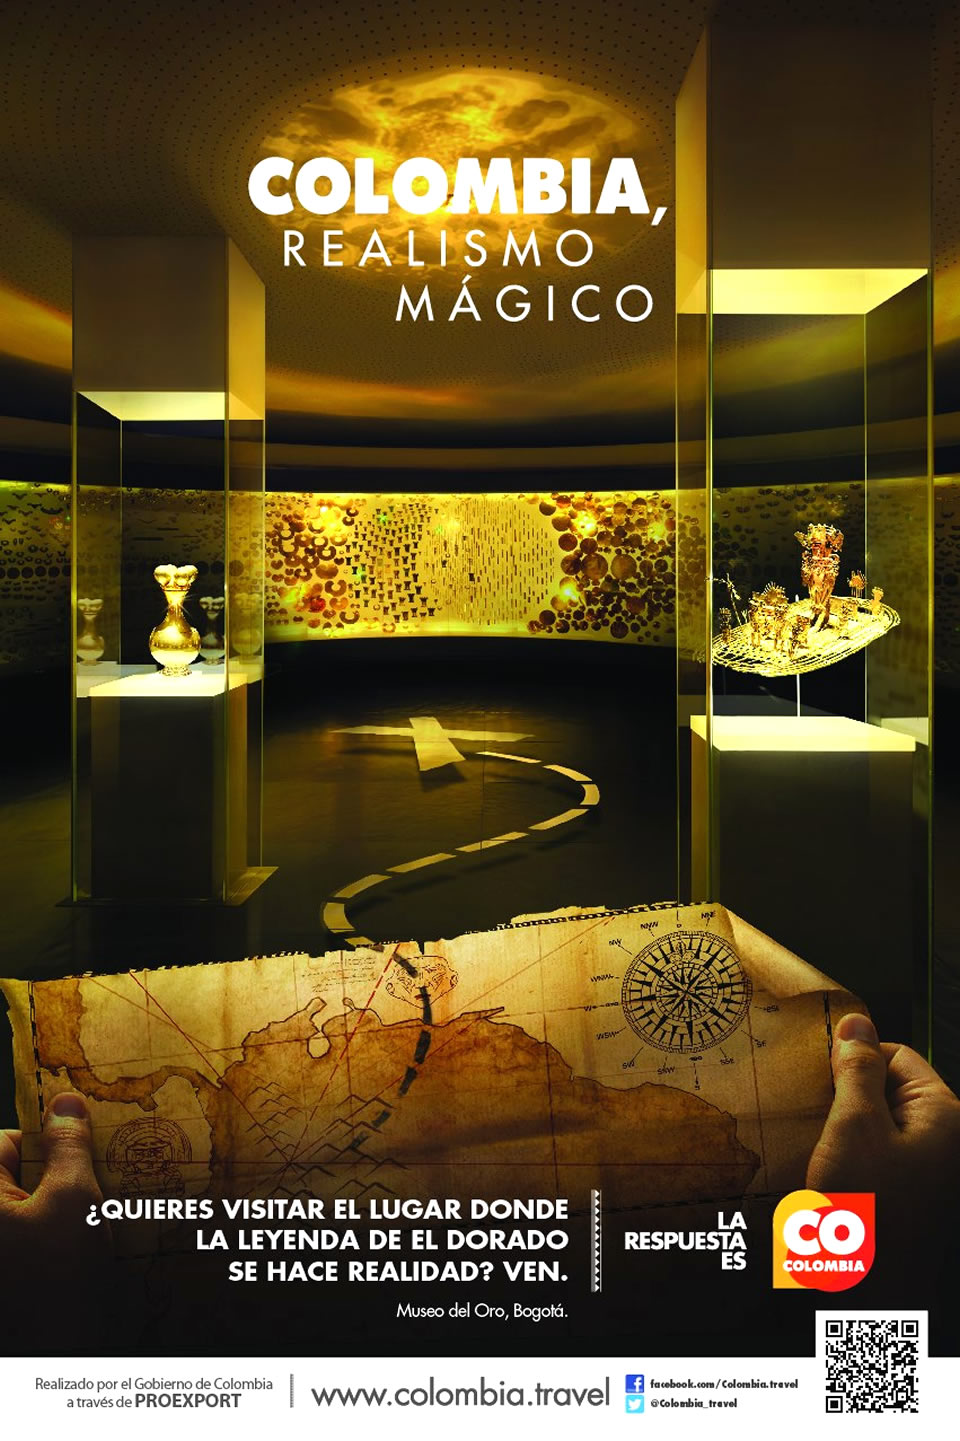 Museo del Oro Tourism Advertisement Poster of Colombia Magical Realism